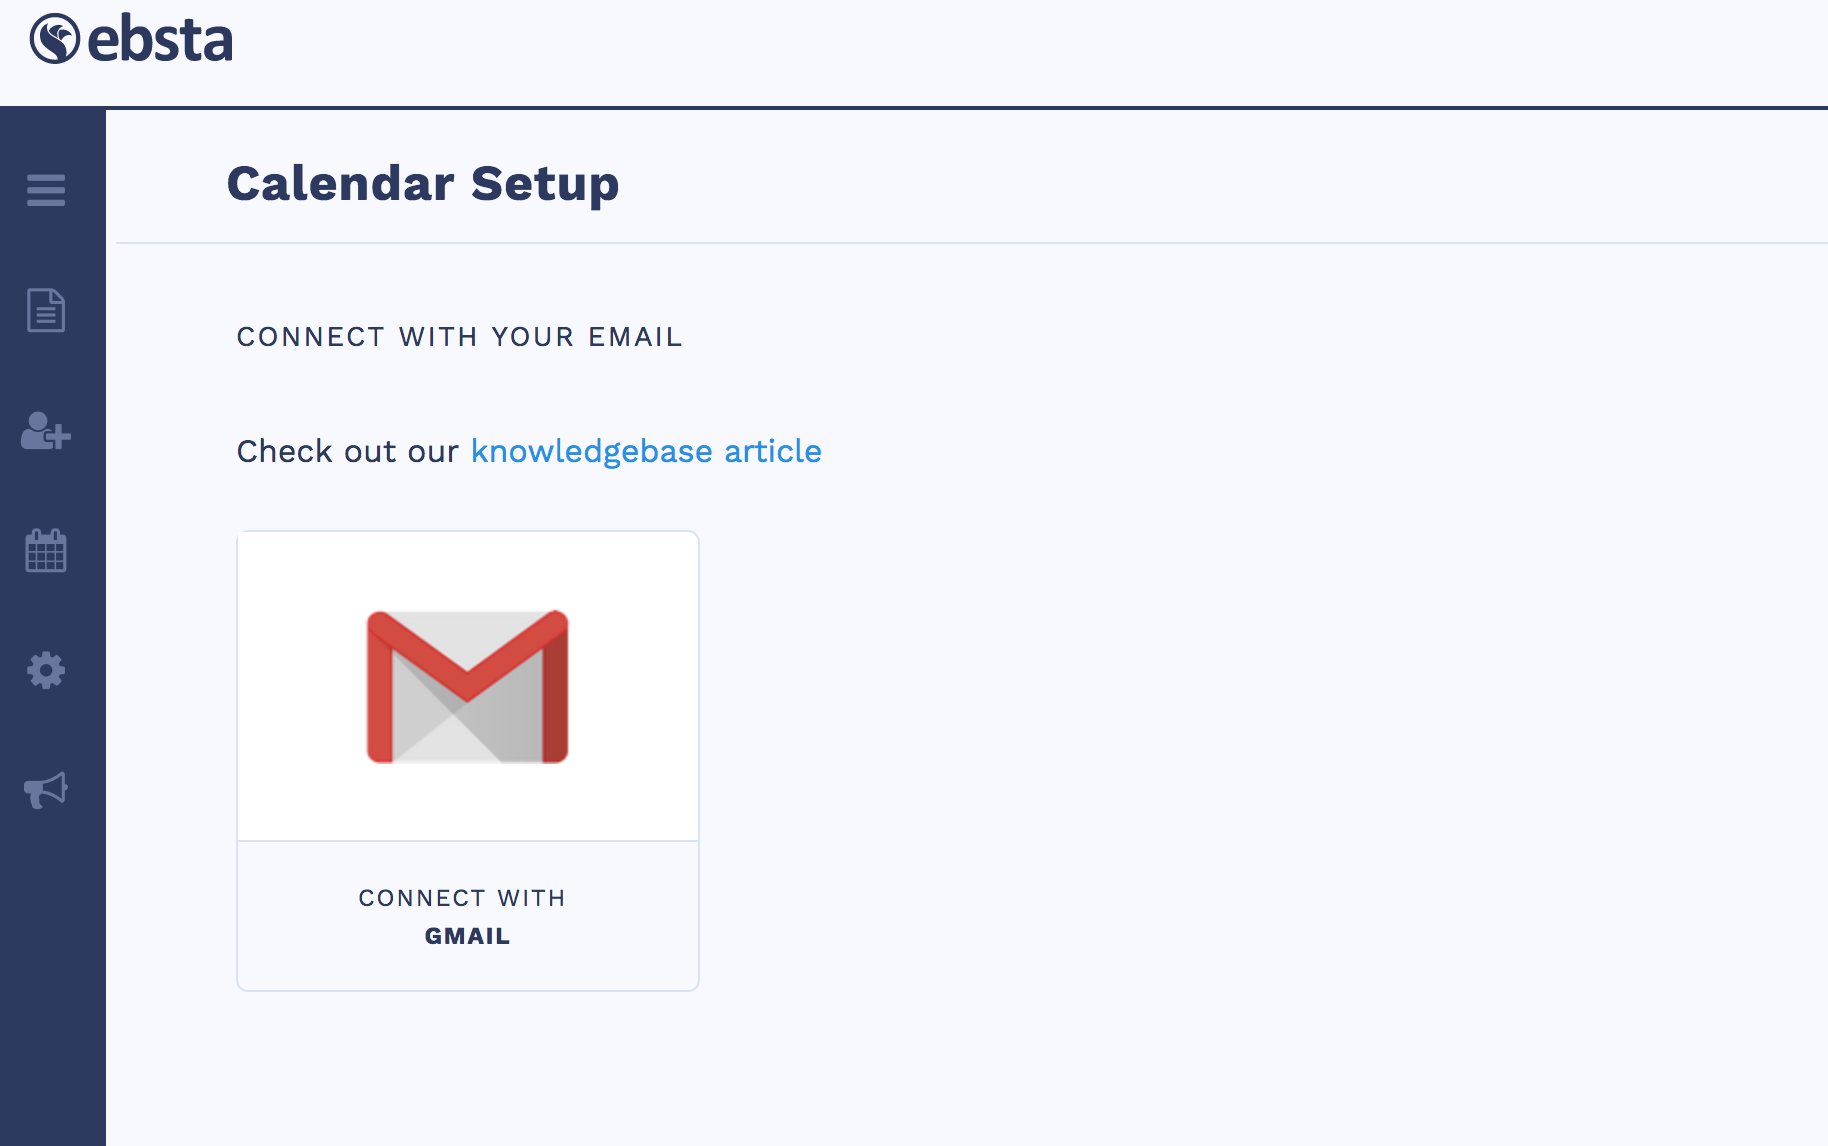 this will open up the calendar setup section of ebstas control panel click connect with gmail